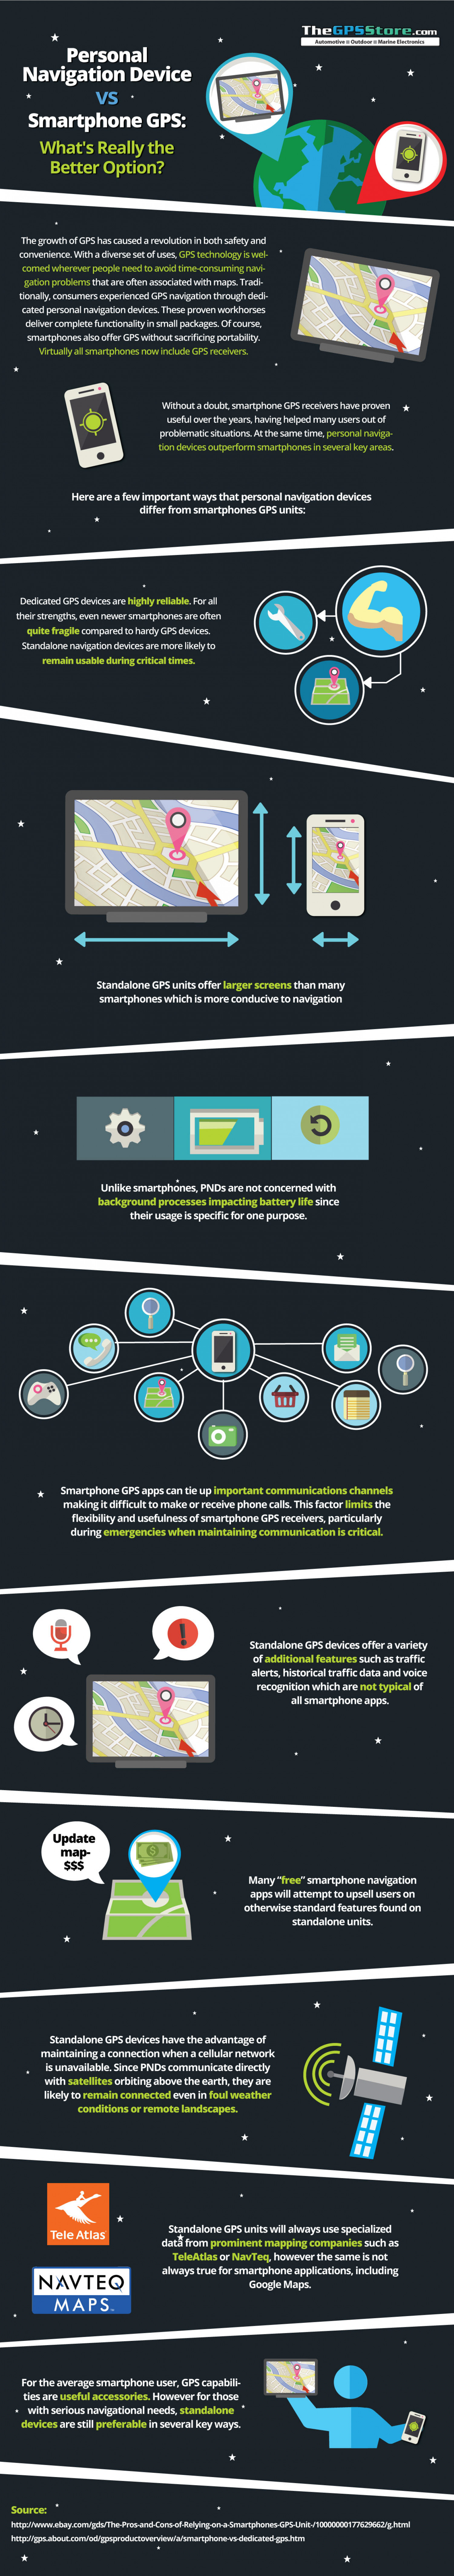 Personal Navigation Devices vs Smartphone GPS Infographic